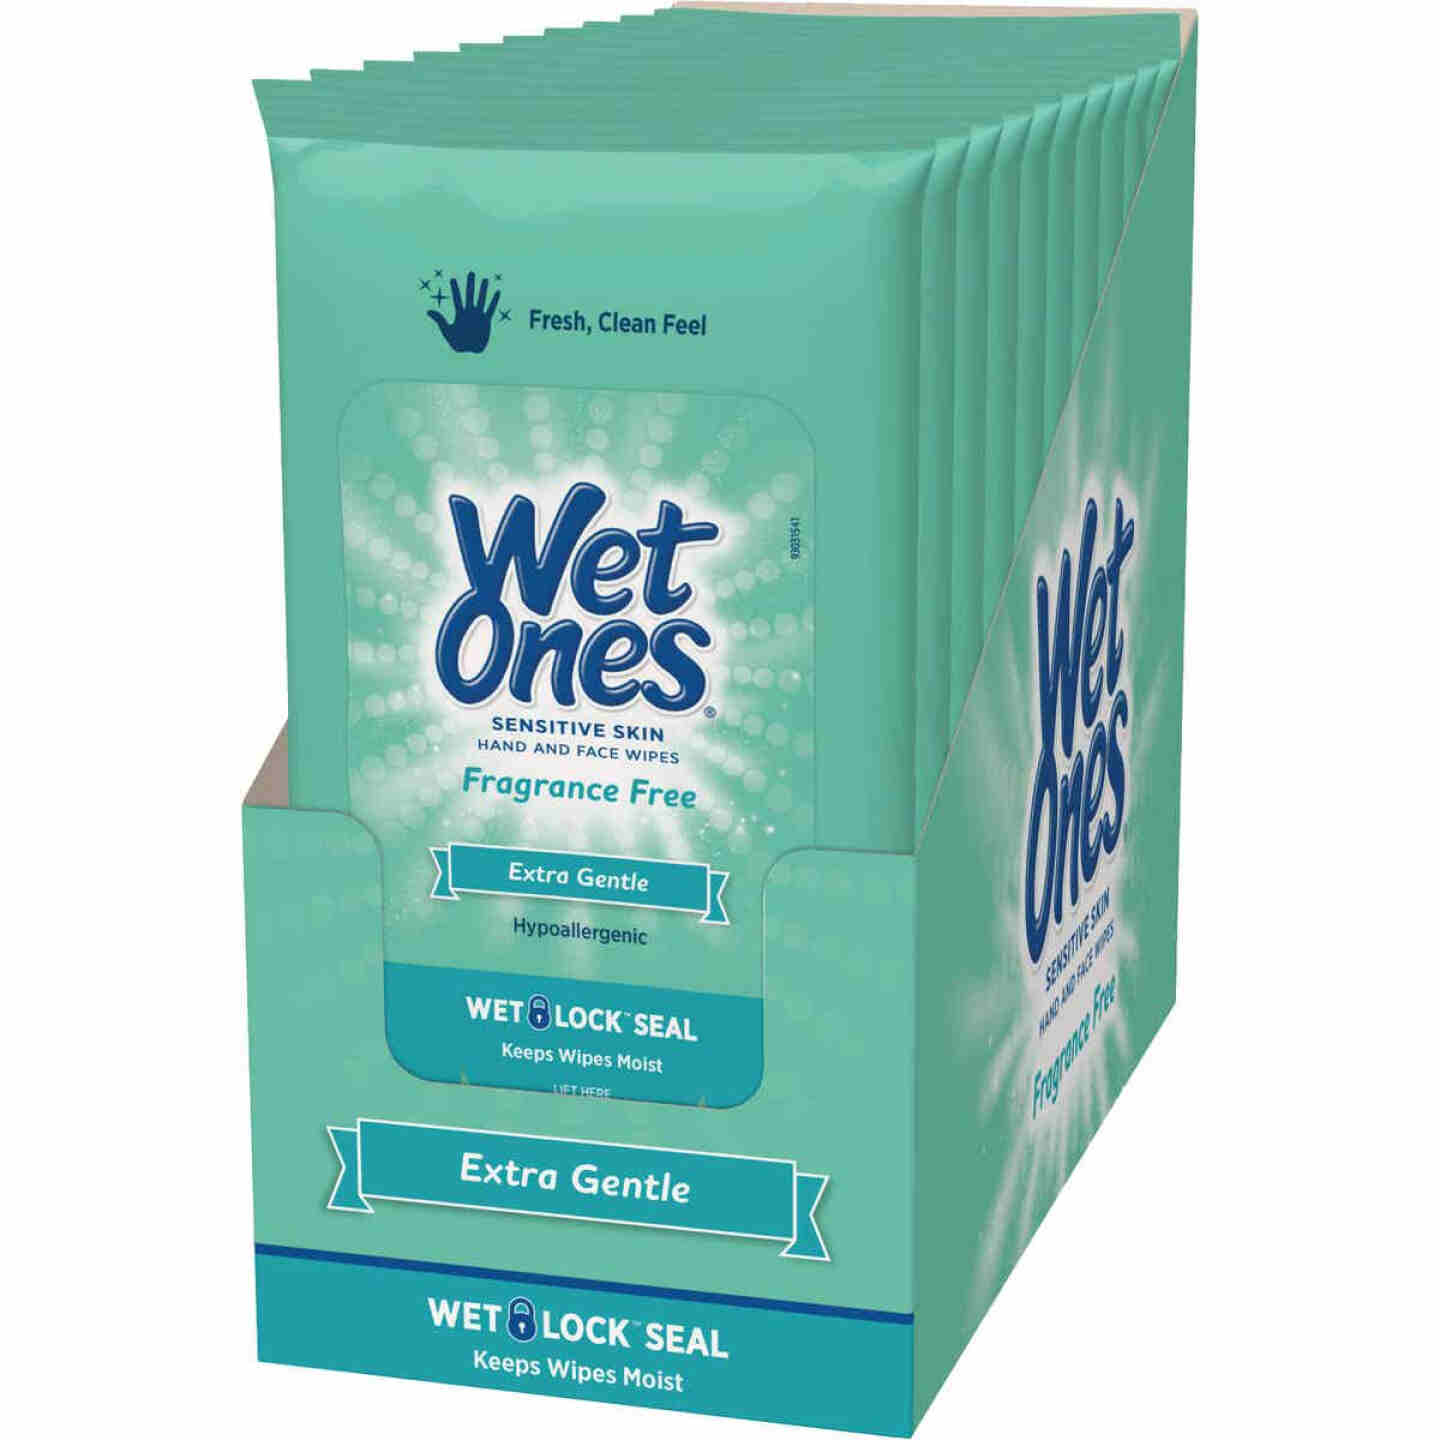 Wet Ones Fragrance-Free Sensitive Skin Travel Pack Hand & Face Cleaning Wipes (20-Count) Image 3